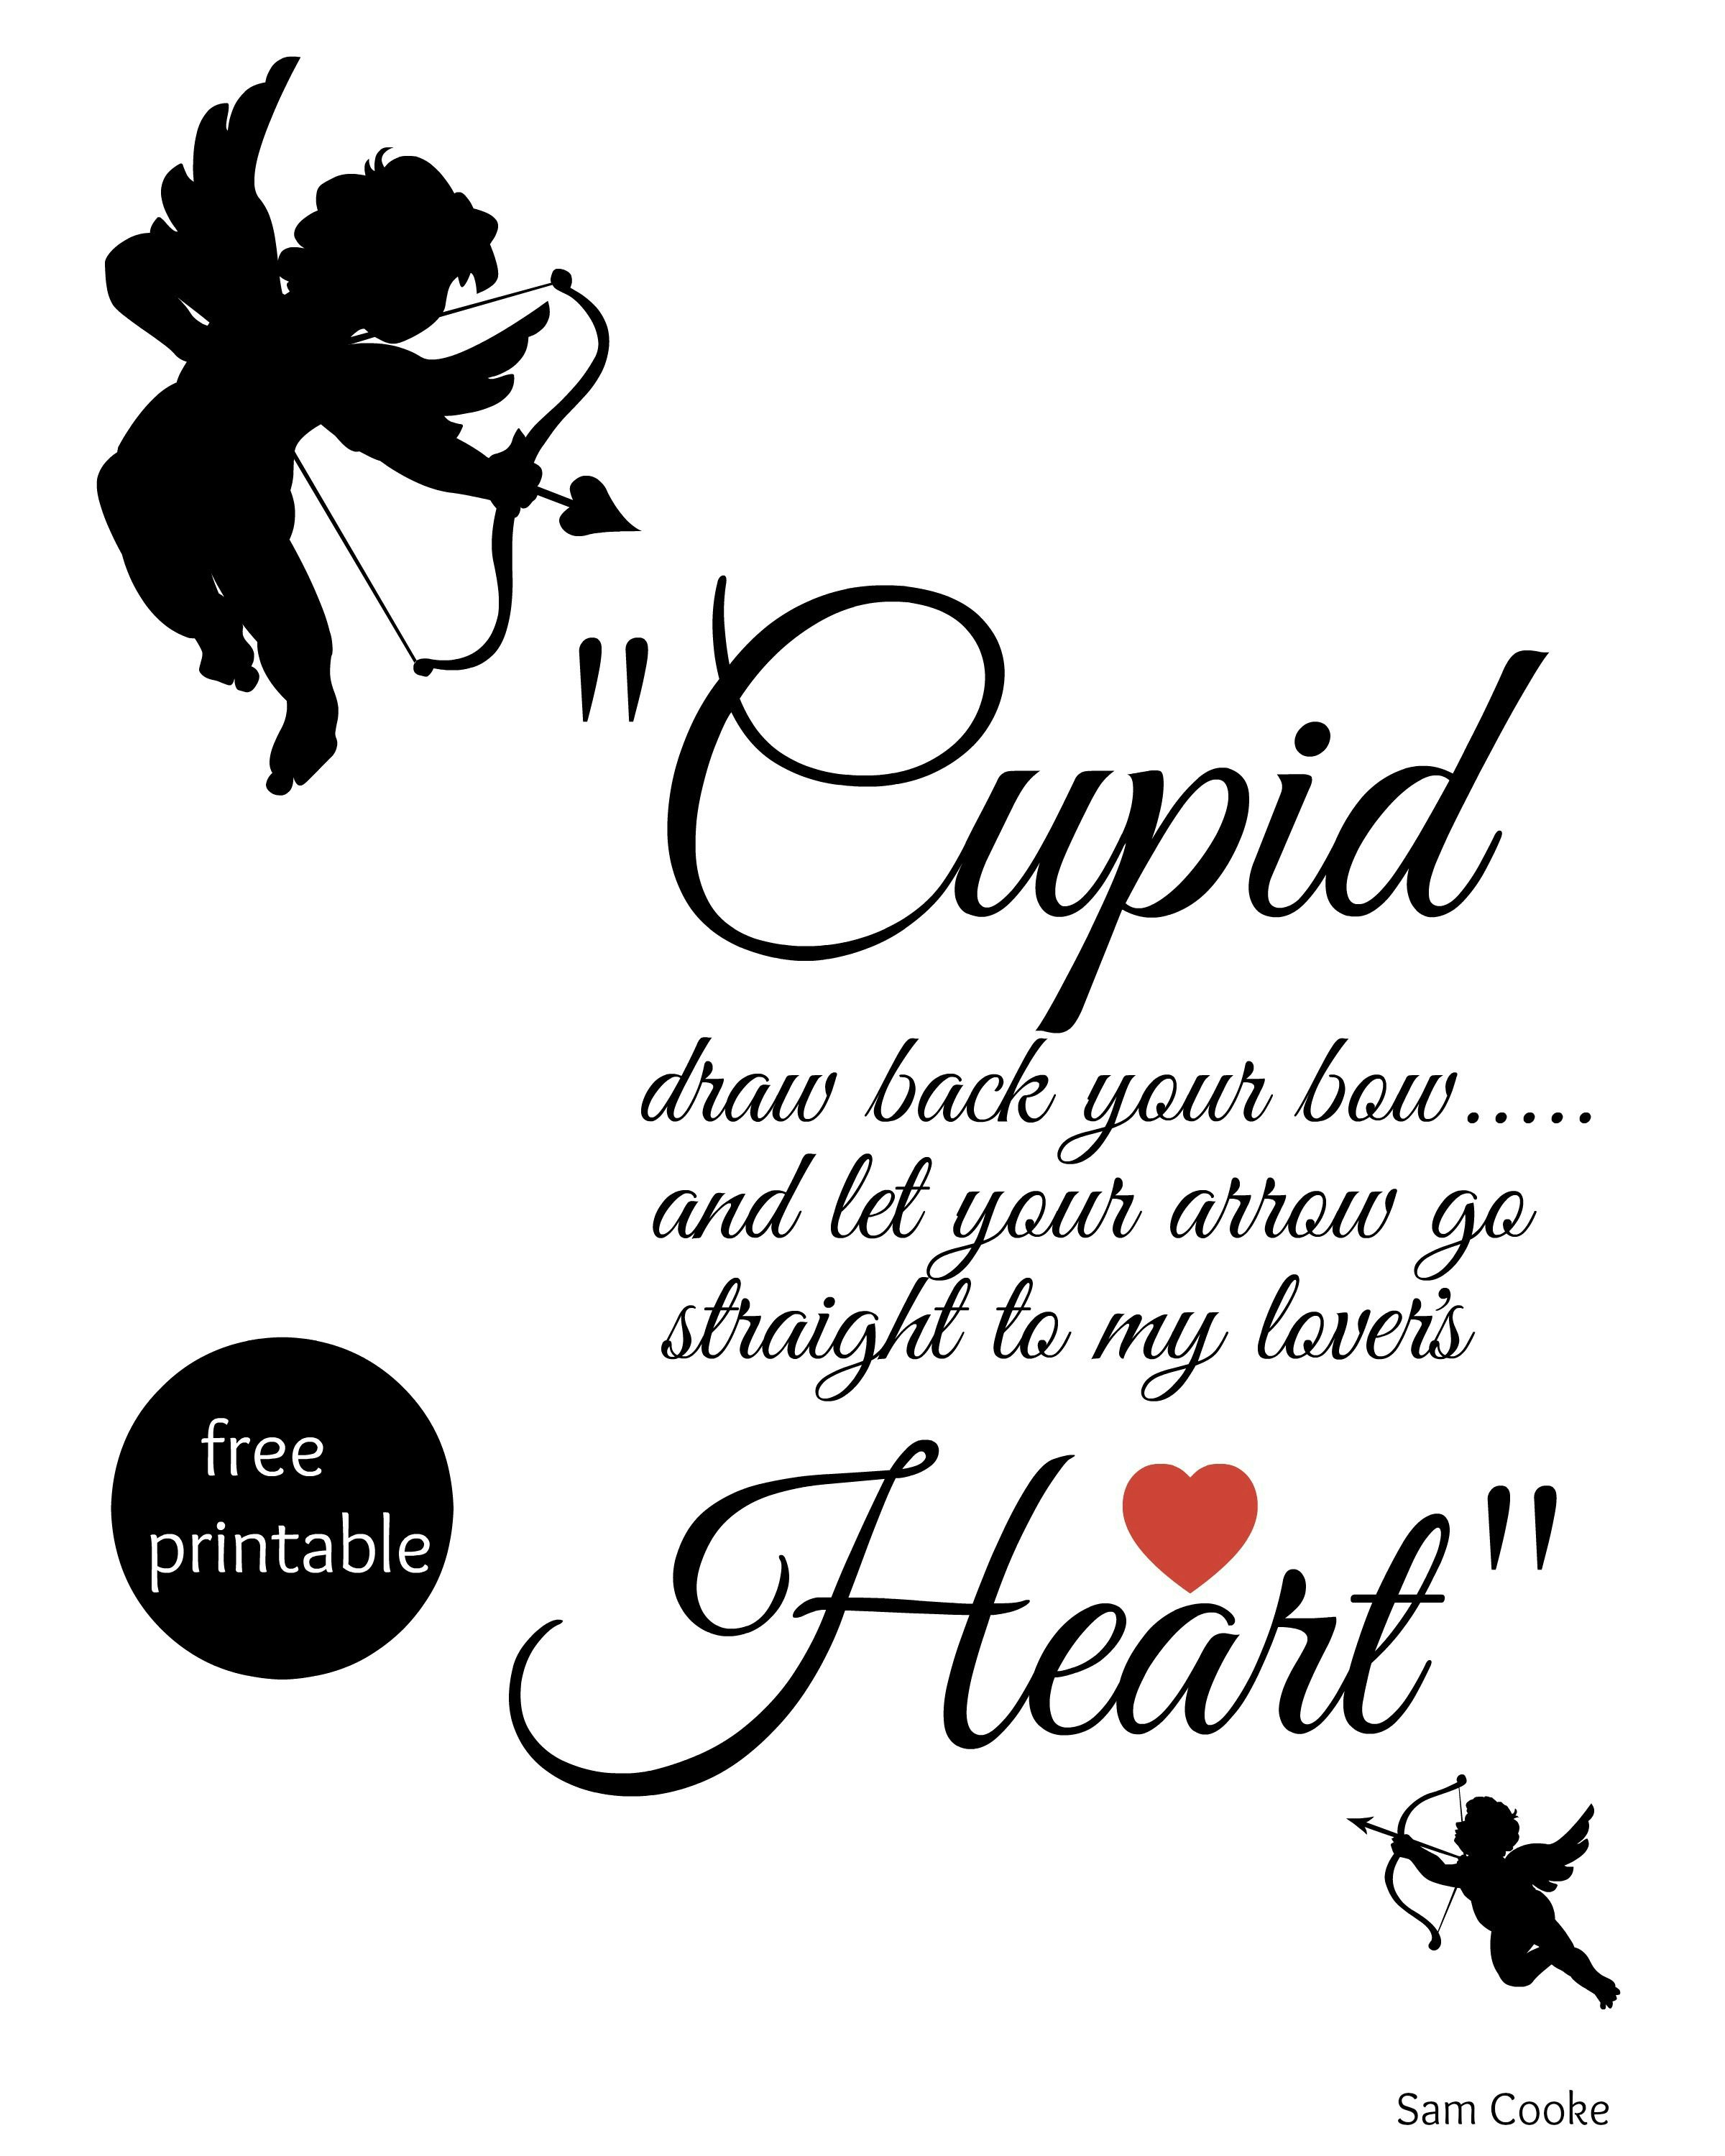 Cupid Draw Back Your Bow | Bloggers' Best Diy Ideas | Pinterest - Free Printable Pictures Of Cupid